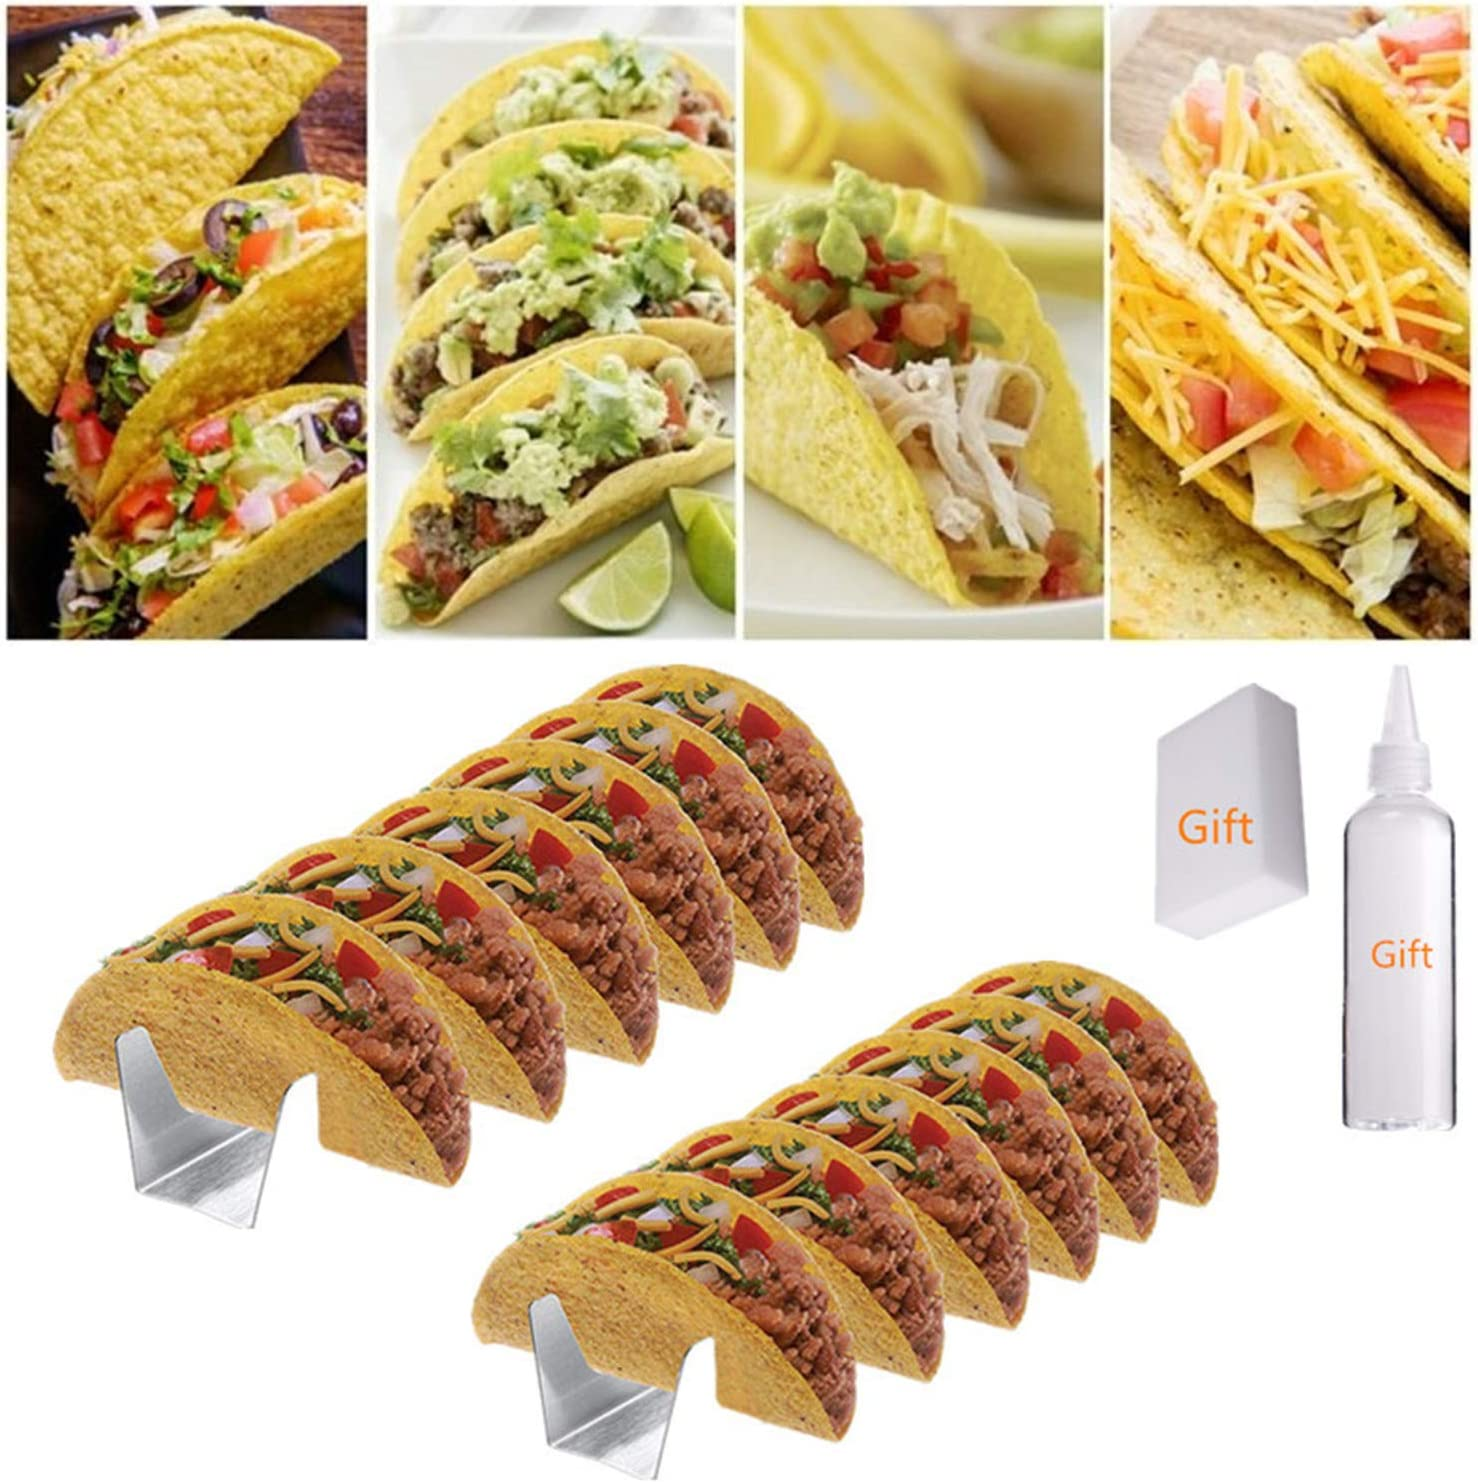 Taco Holder Plate Stainless Steel Rack Fried Food Cooling Drain Tray Pancake Storage Shelf Pizza Pie Display Stand Kitchen Tool Dishwashing Sponge Taco Sauce Bottle 2Packs Taco Tuesday Kit